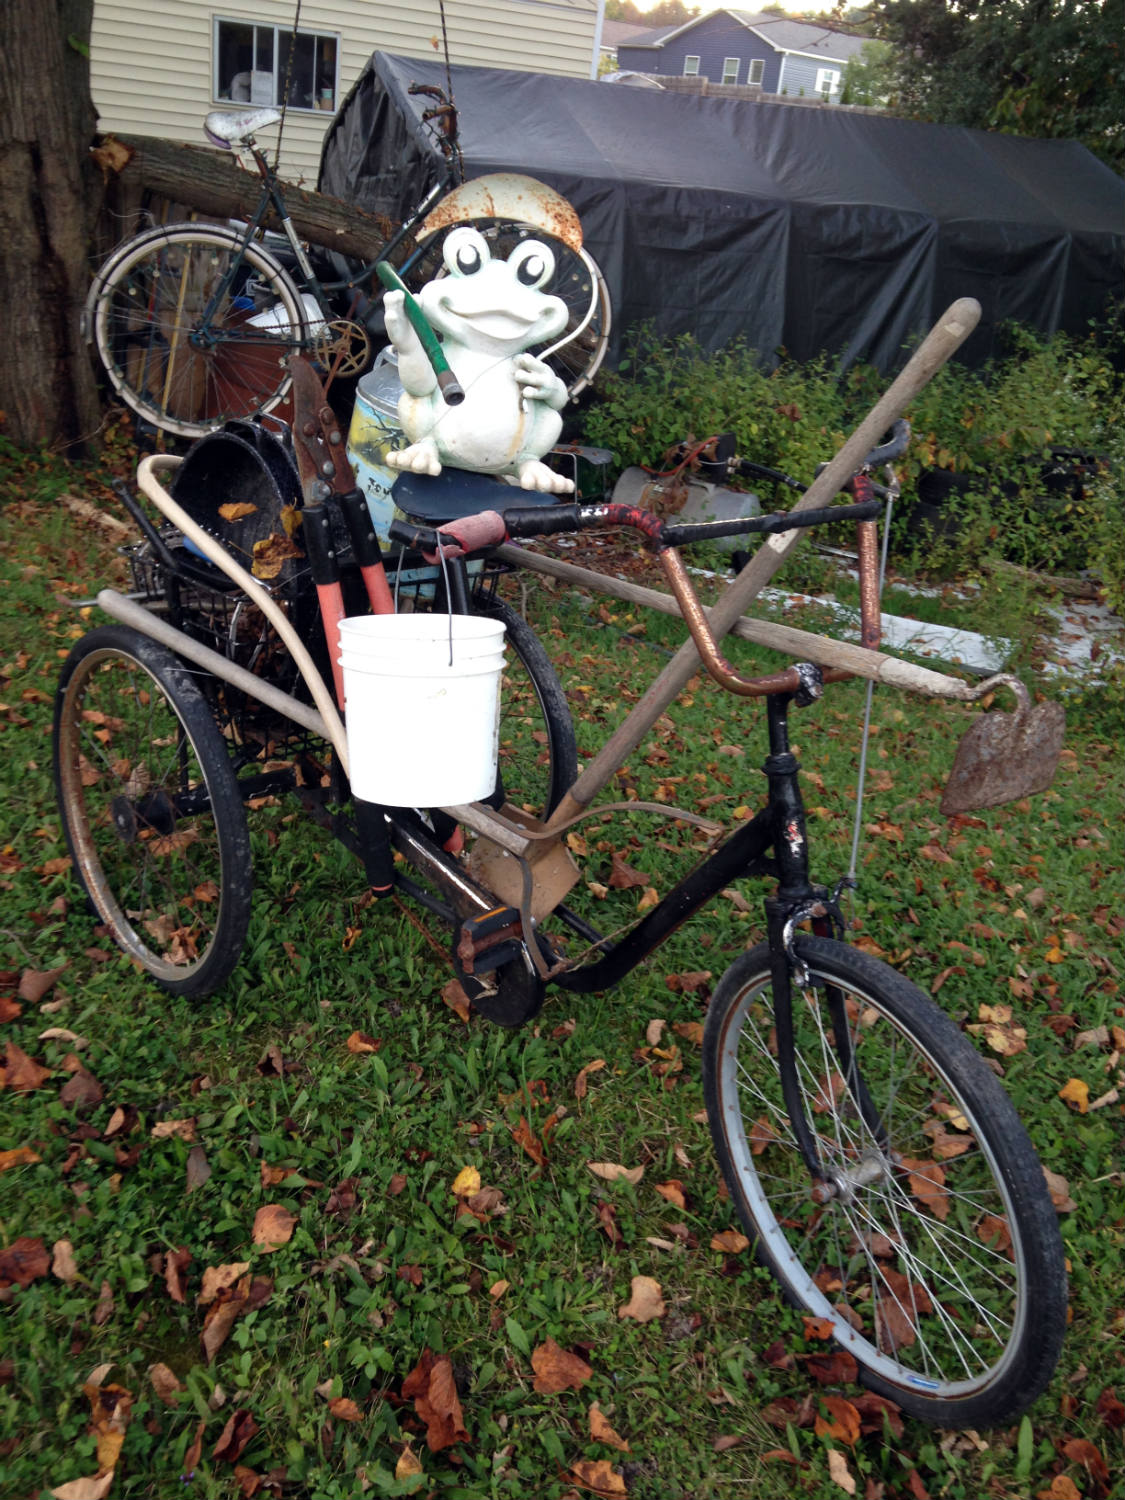 Bicycle Art and Yard Sculptures - Palmyra, NY Frog on Bike